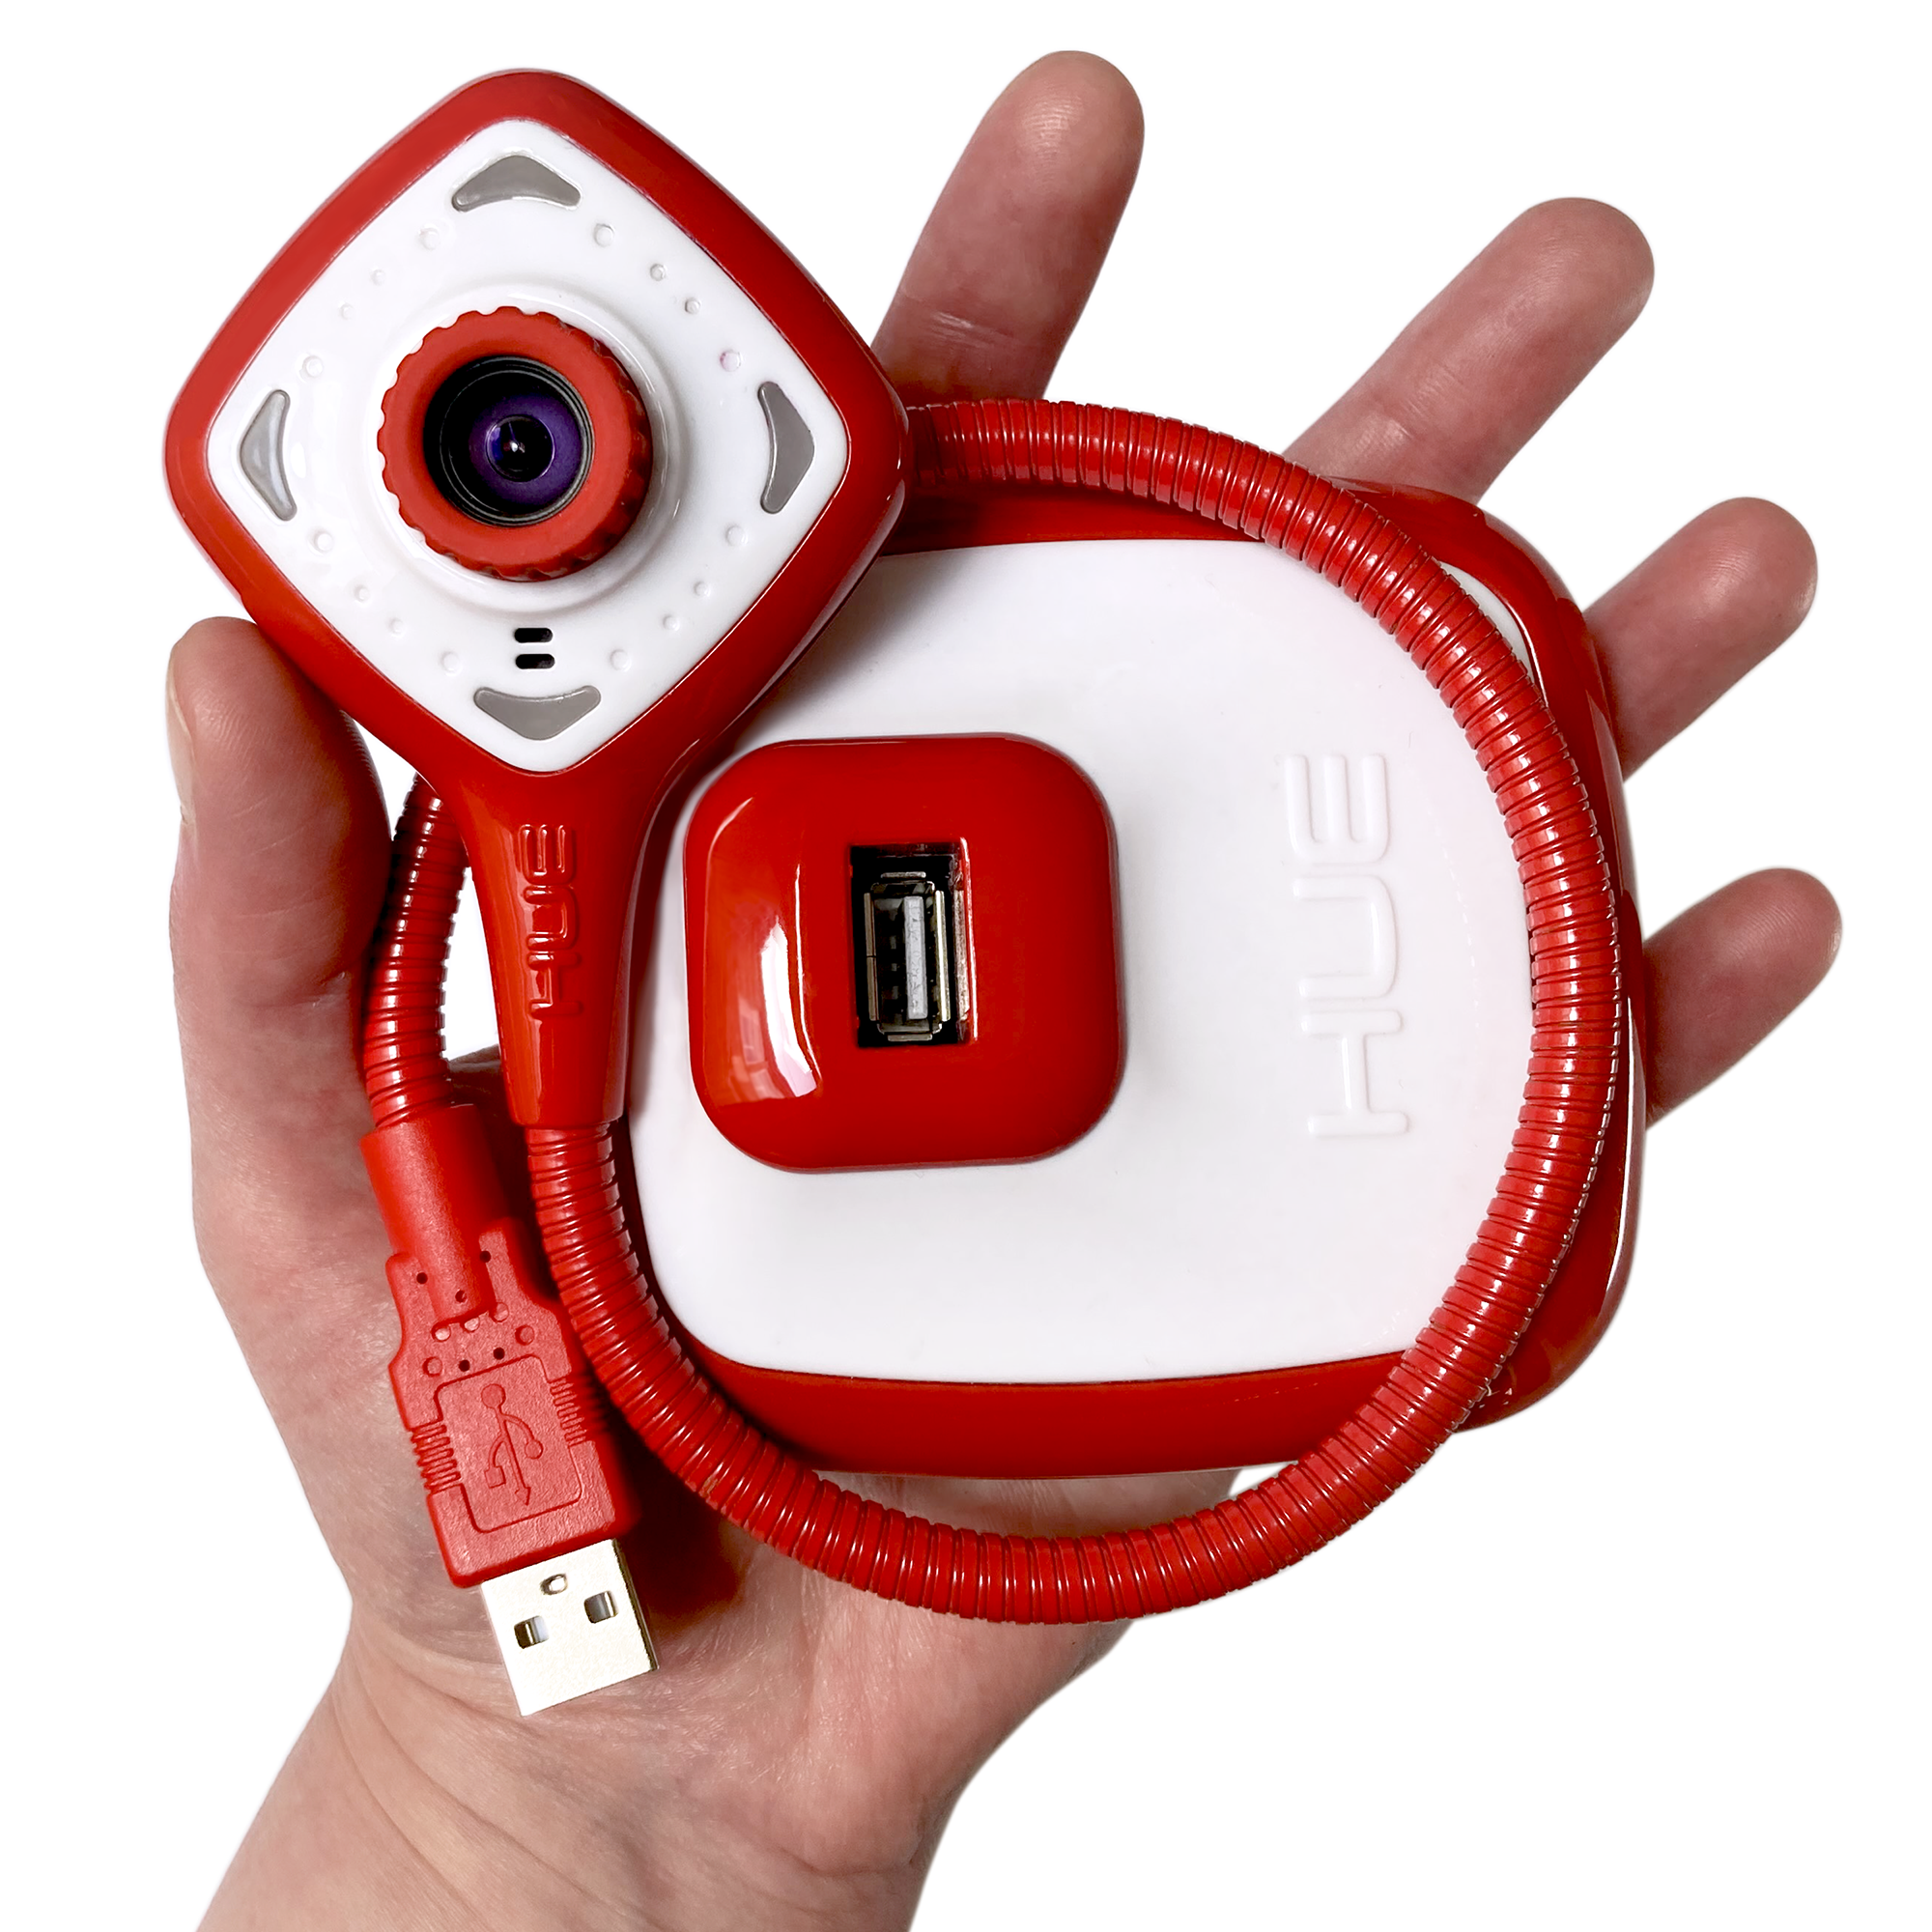 The HUE HD Pro camera in a person's hand